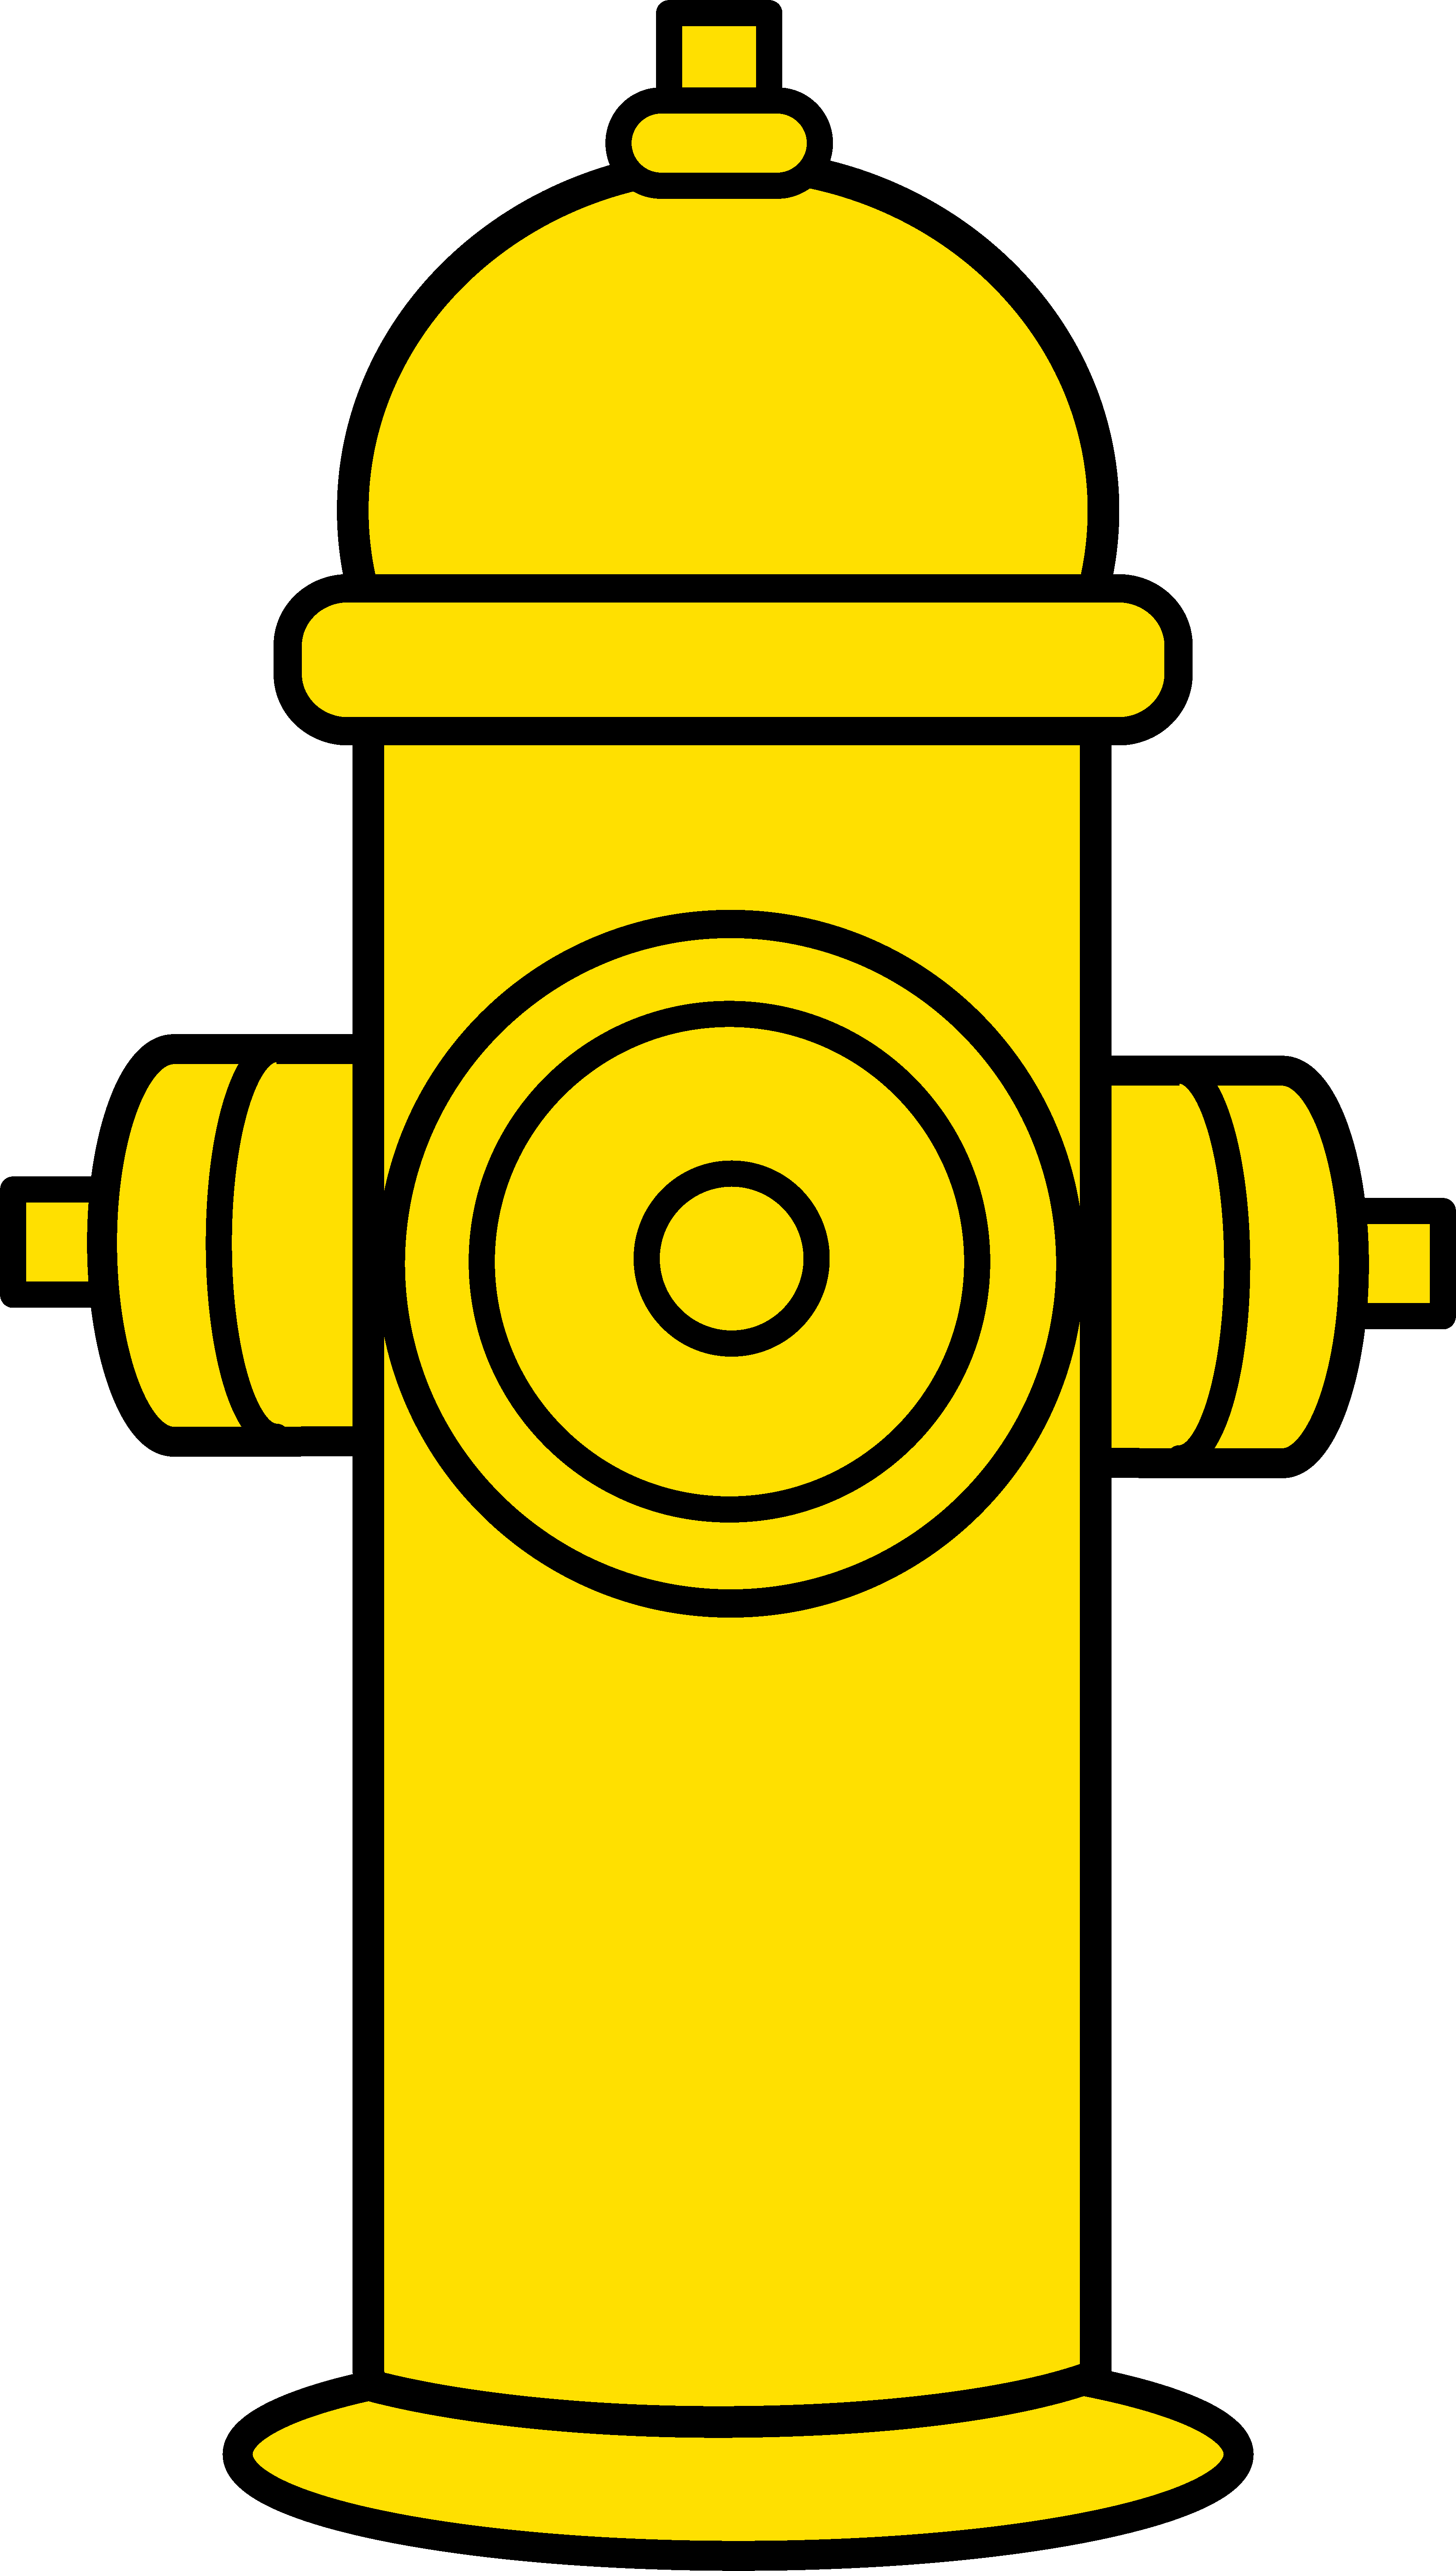 Flames clipart royalty free. Yellow fire hydrant